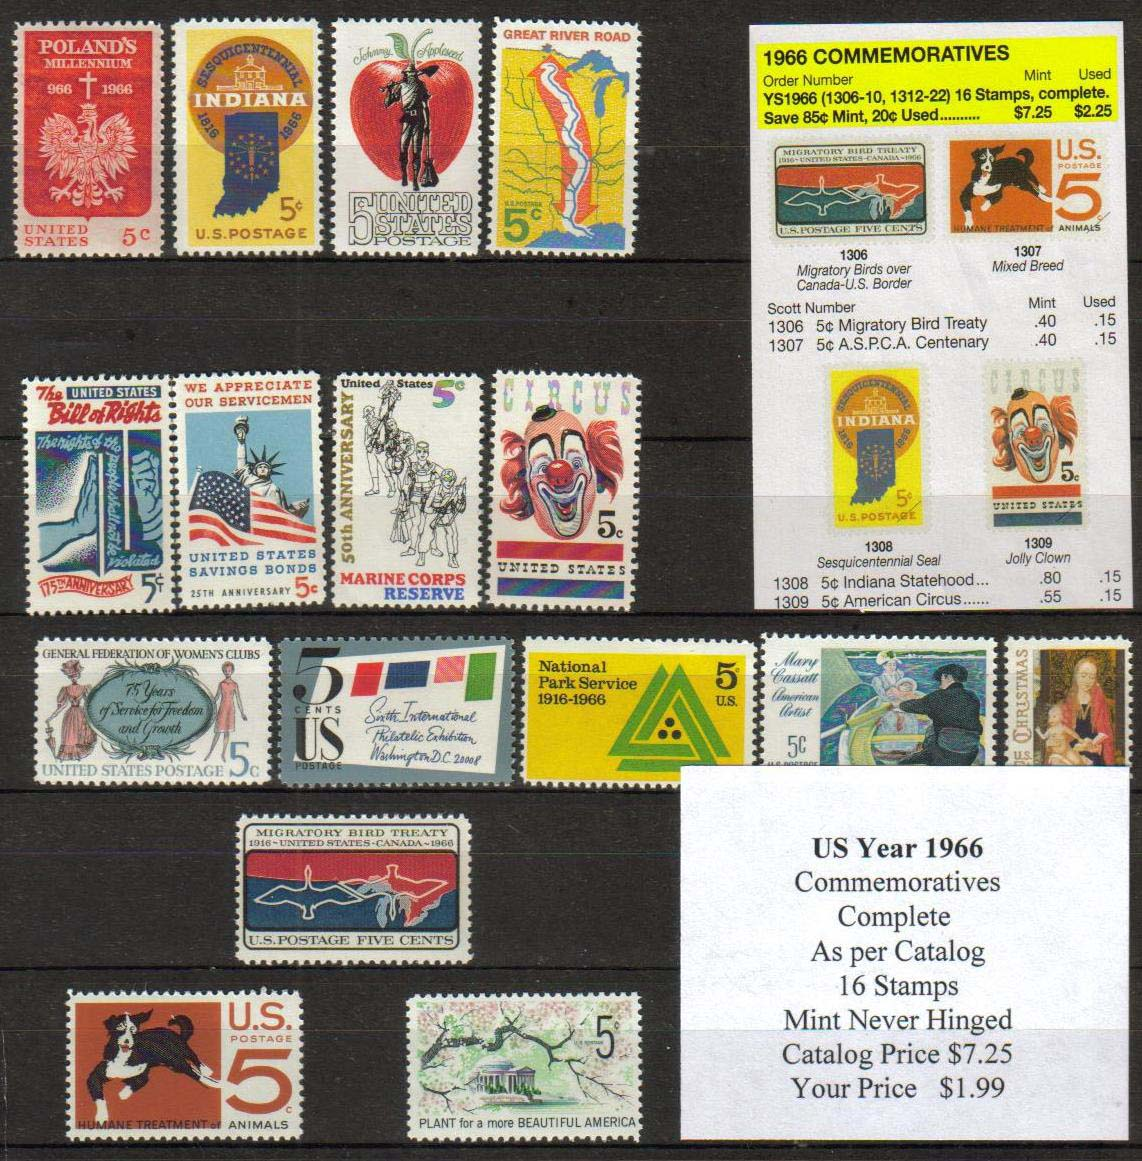 1966 COMMEMORATIVES, 16 STAMPS